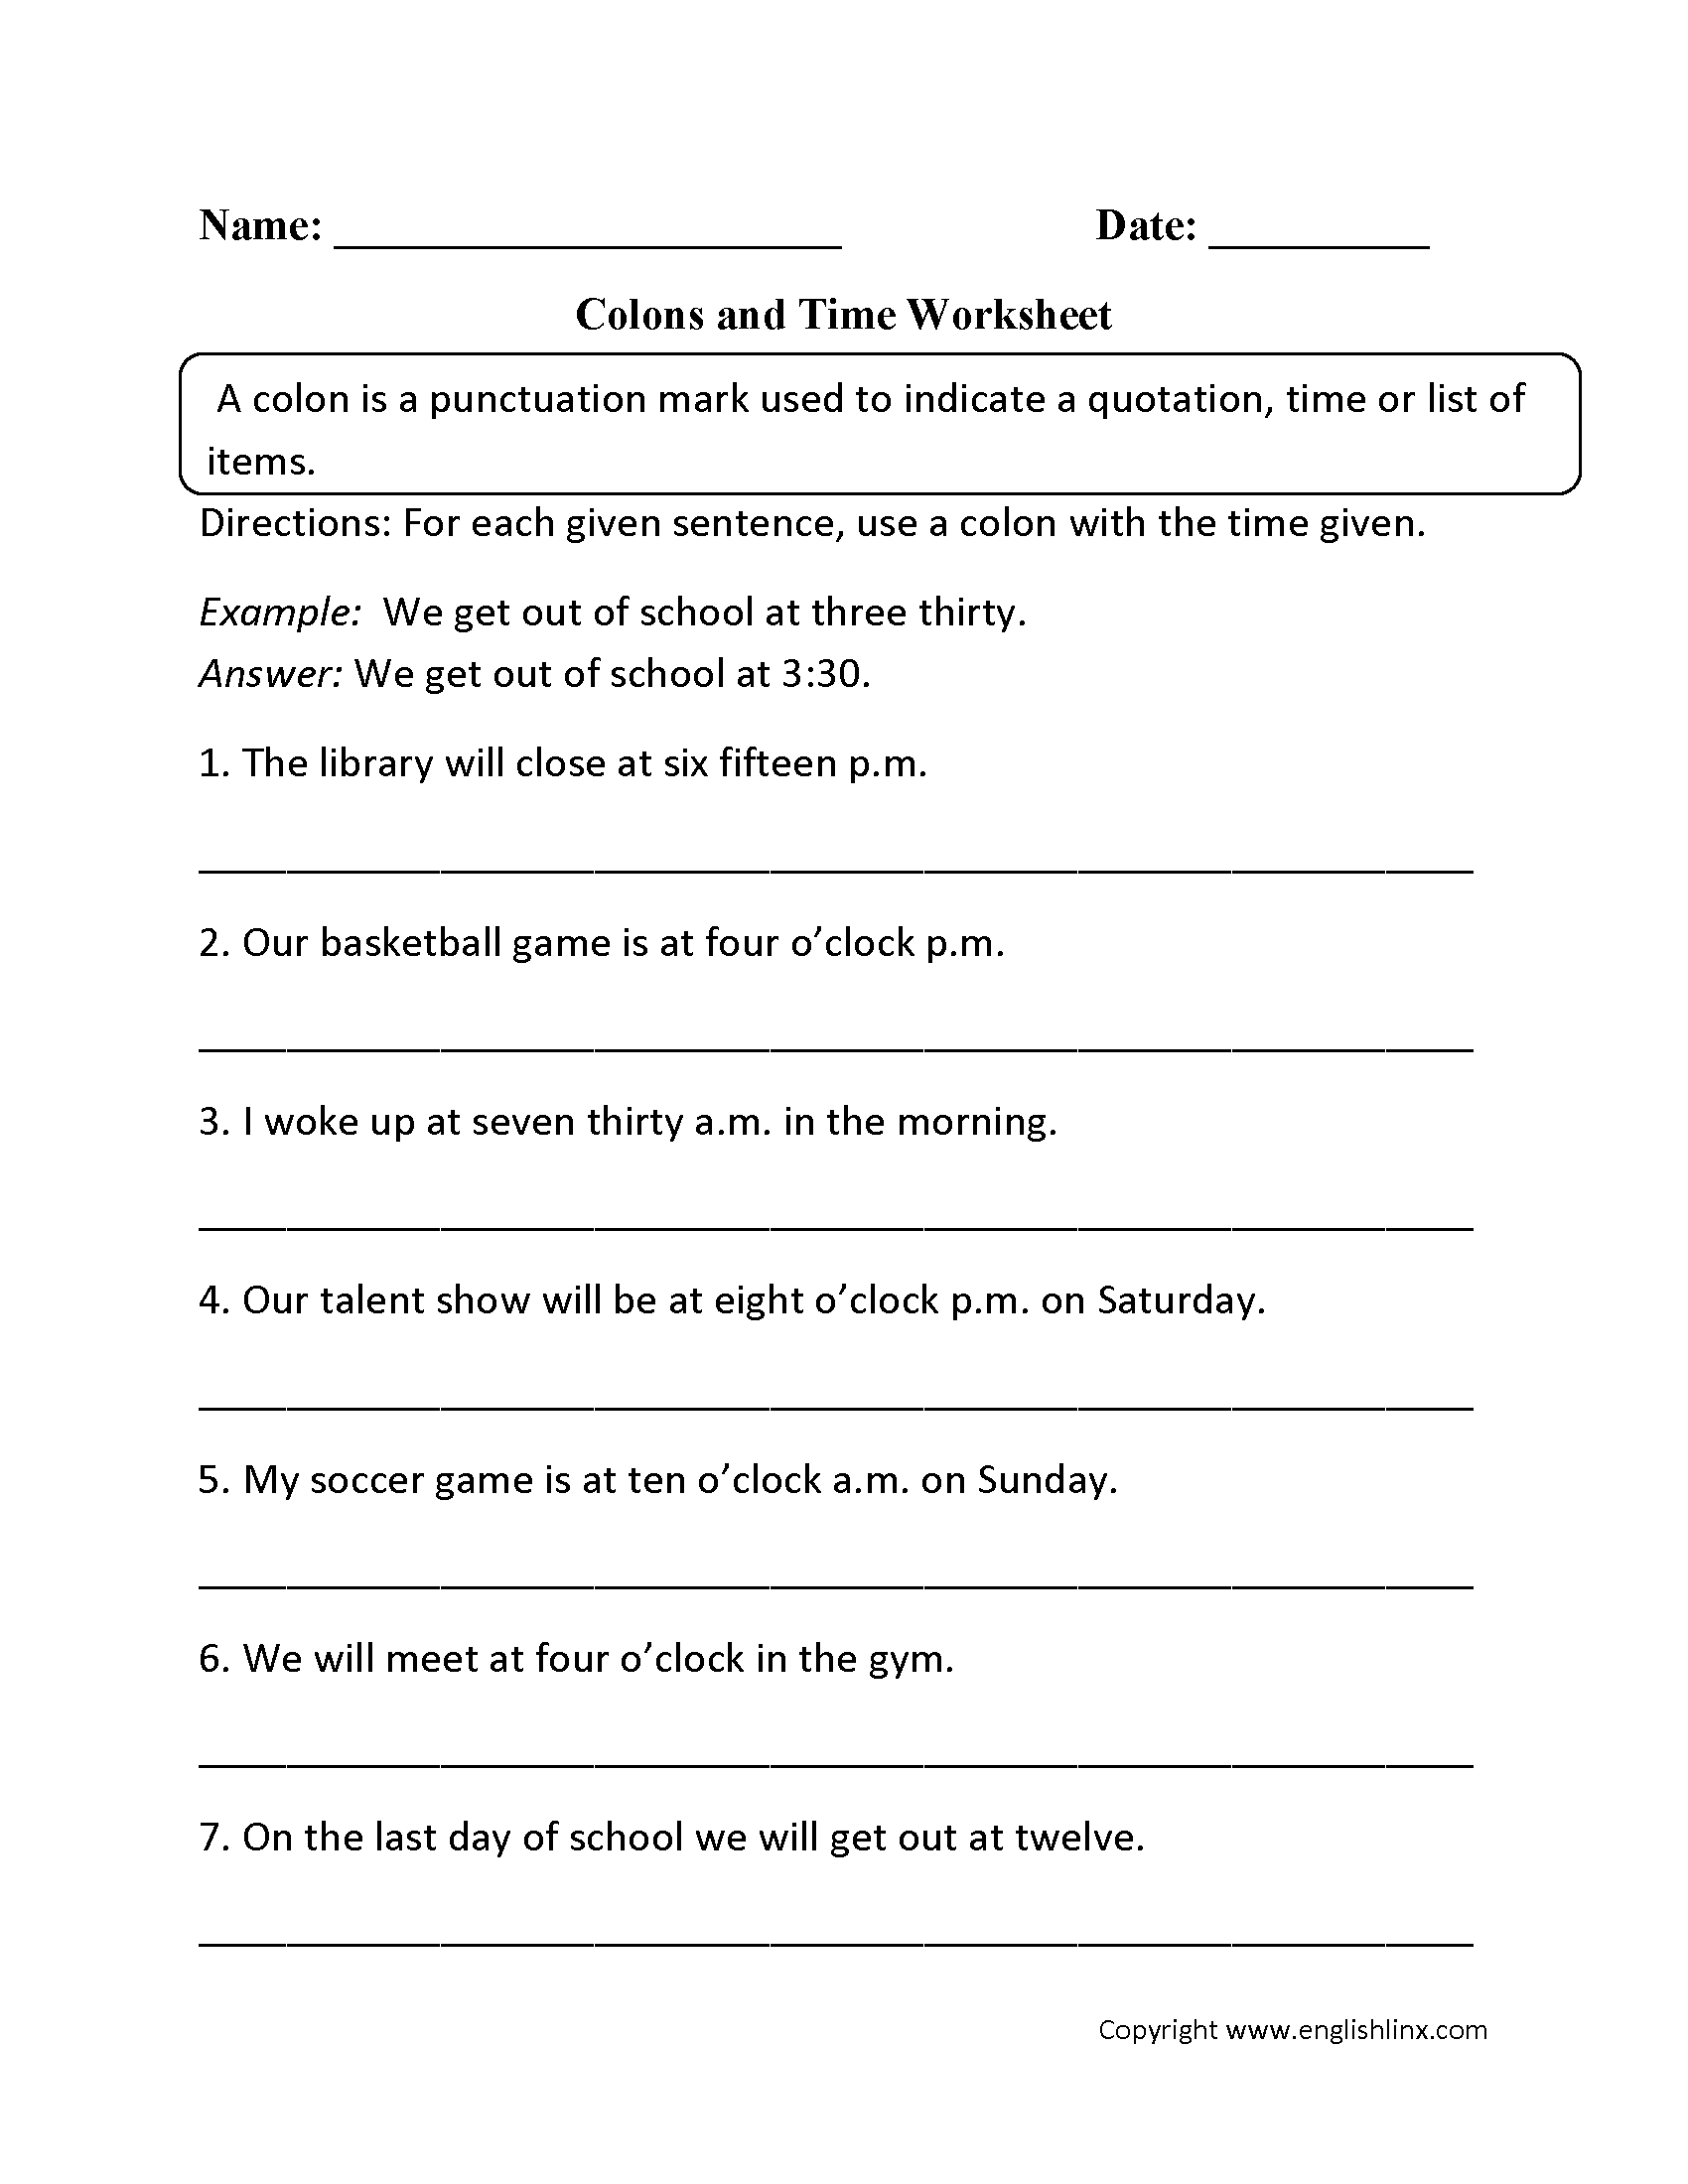 worksheet Punctuation Marks Worksheets colon worksheets englishlinx com board pinterest punctuation english that cover the categories of is set marks used to regulate texts and clarify